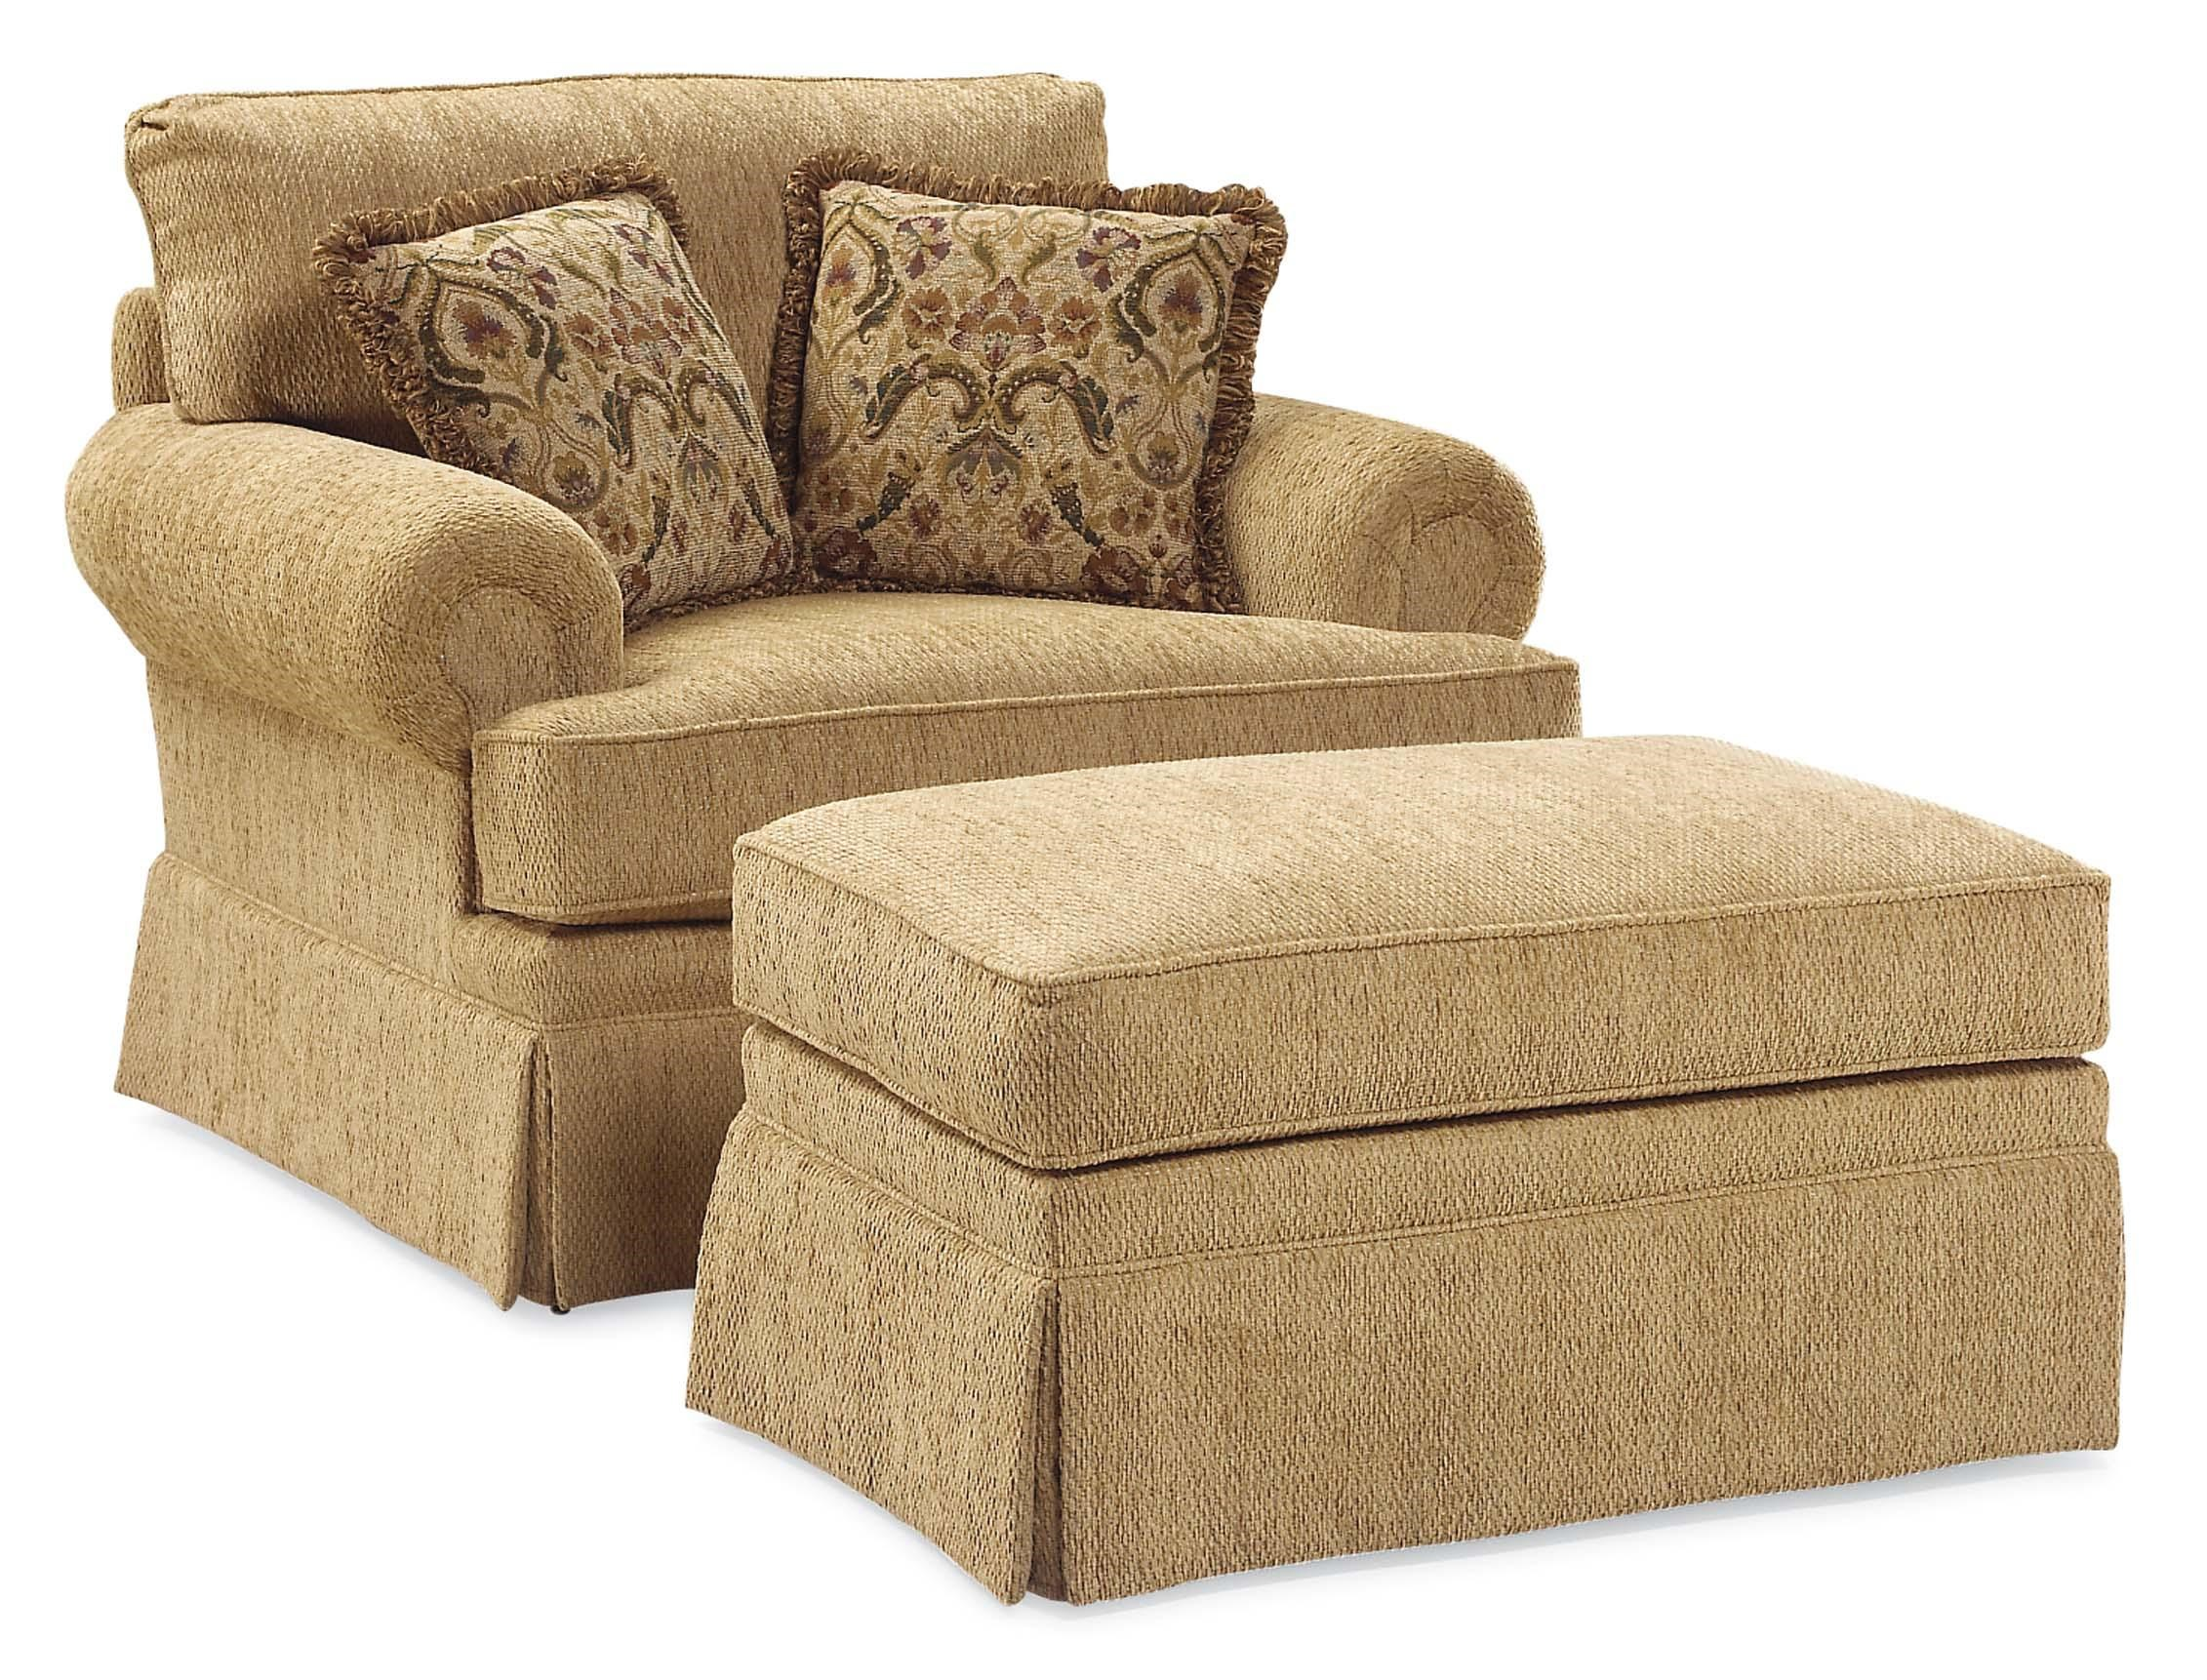 Image Result For Living Room Ottoman